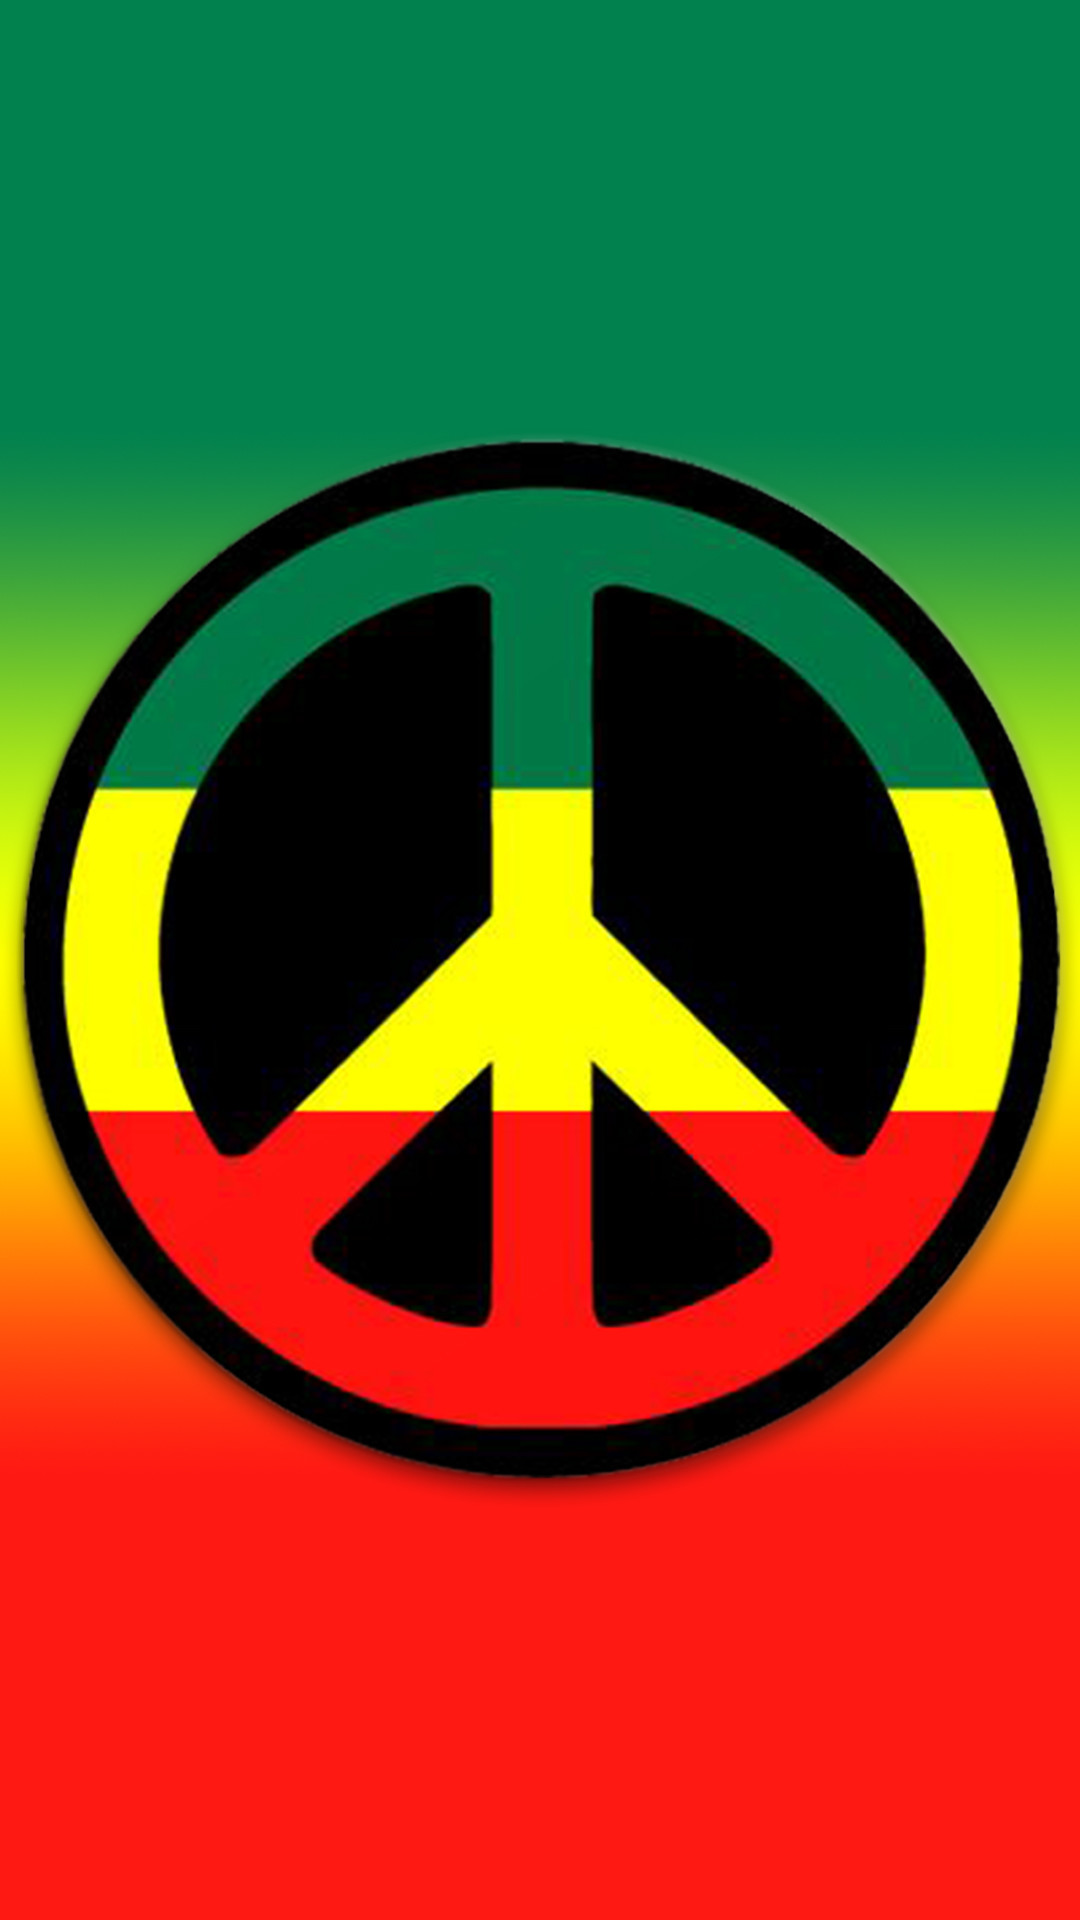 Peace Sign Wallpapers ·①